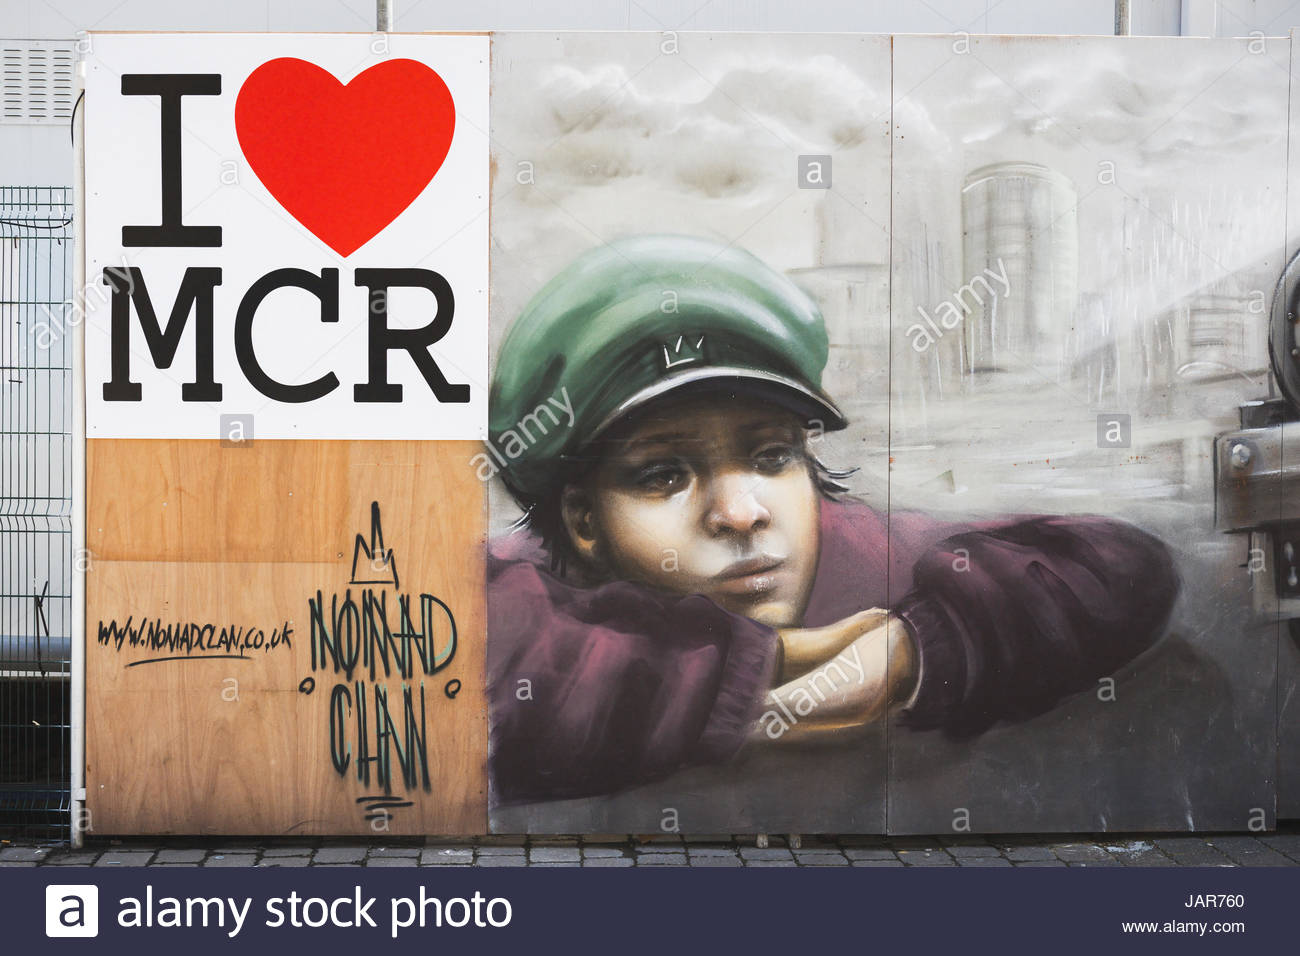 I Love MCR street art piece by Nomad Clan, Manchester UK - Stock Image